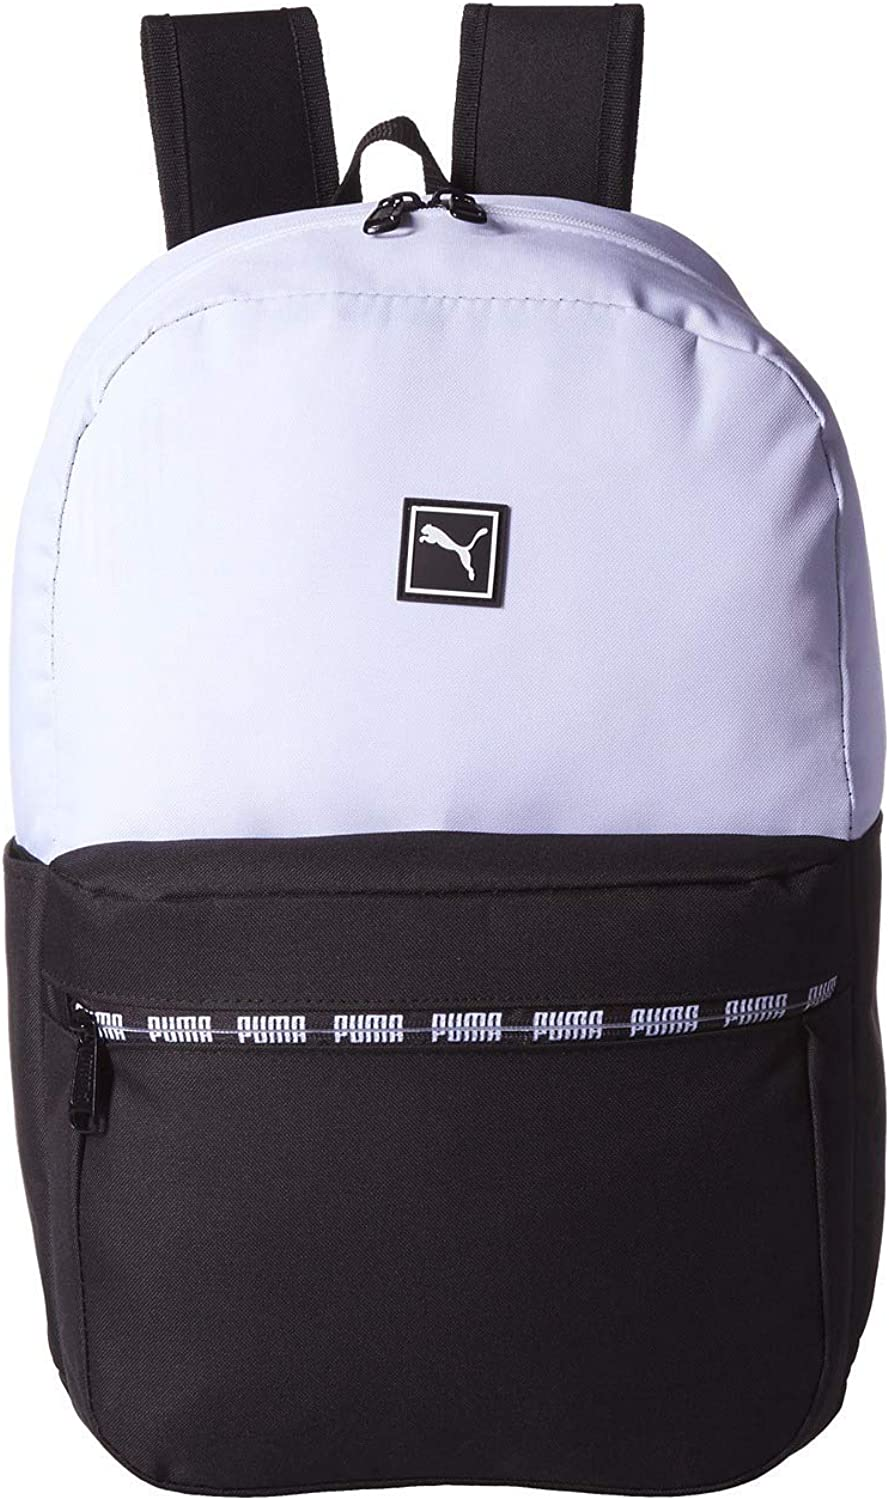 PUMA Unisex Life Lineage Backpack